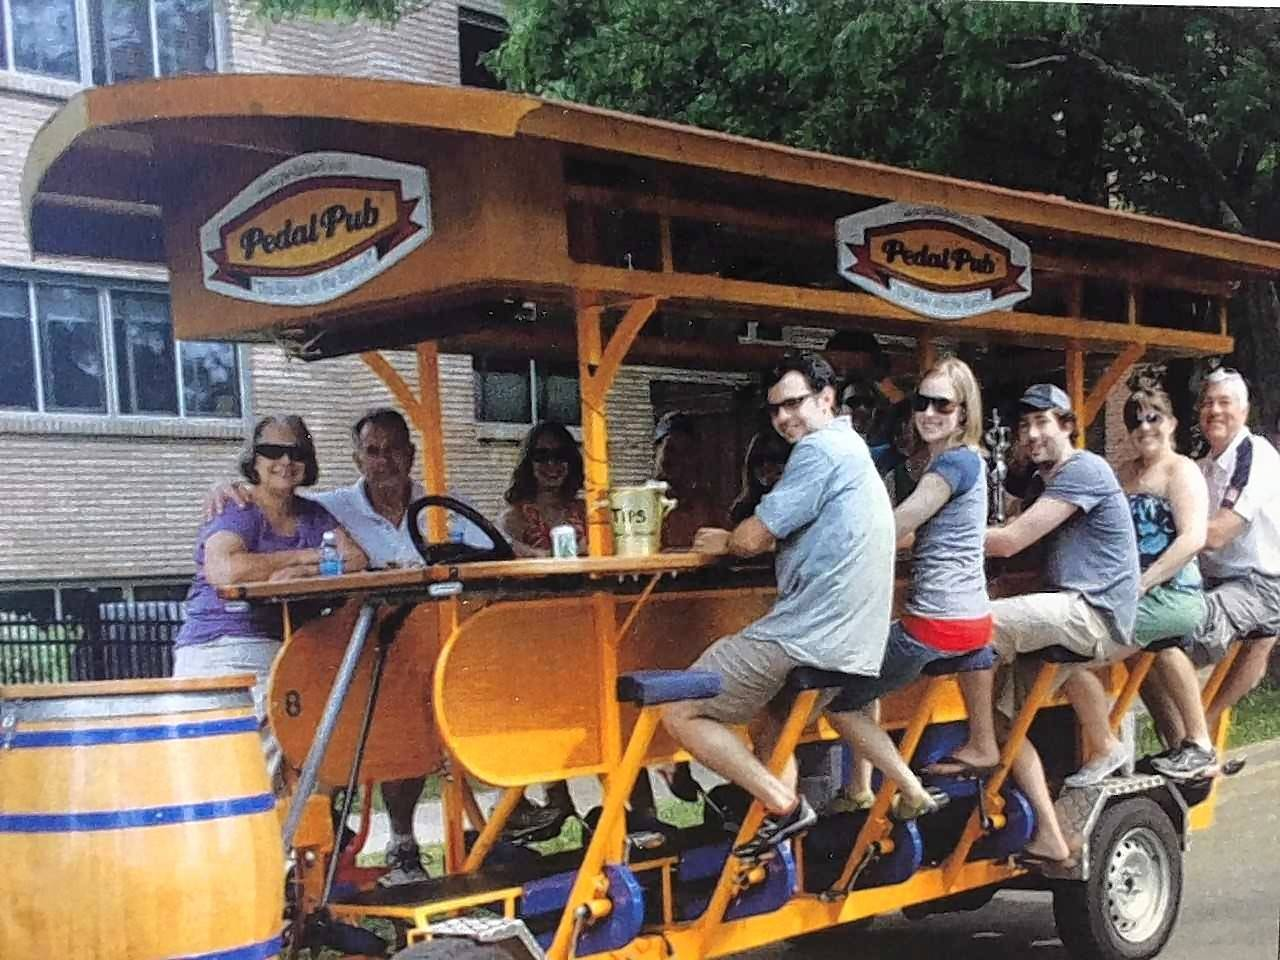 Pedal Pub plans Naperville opening without BYOB